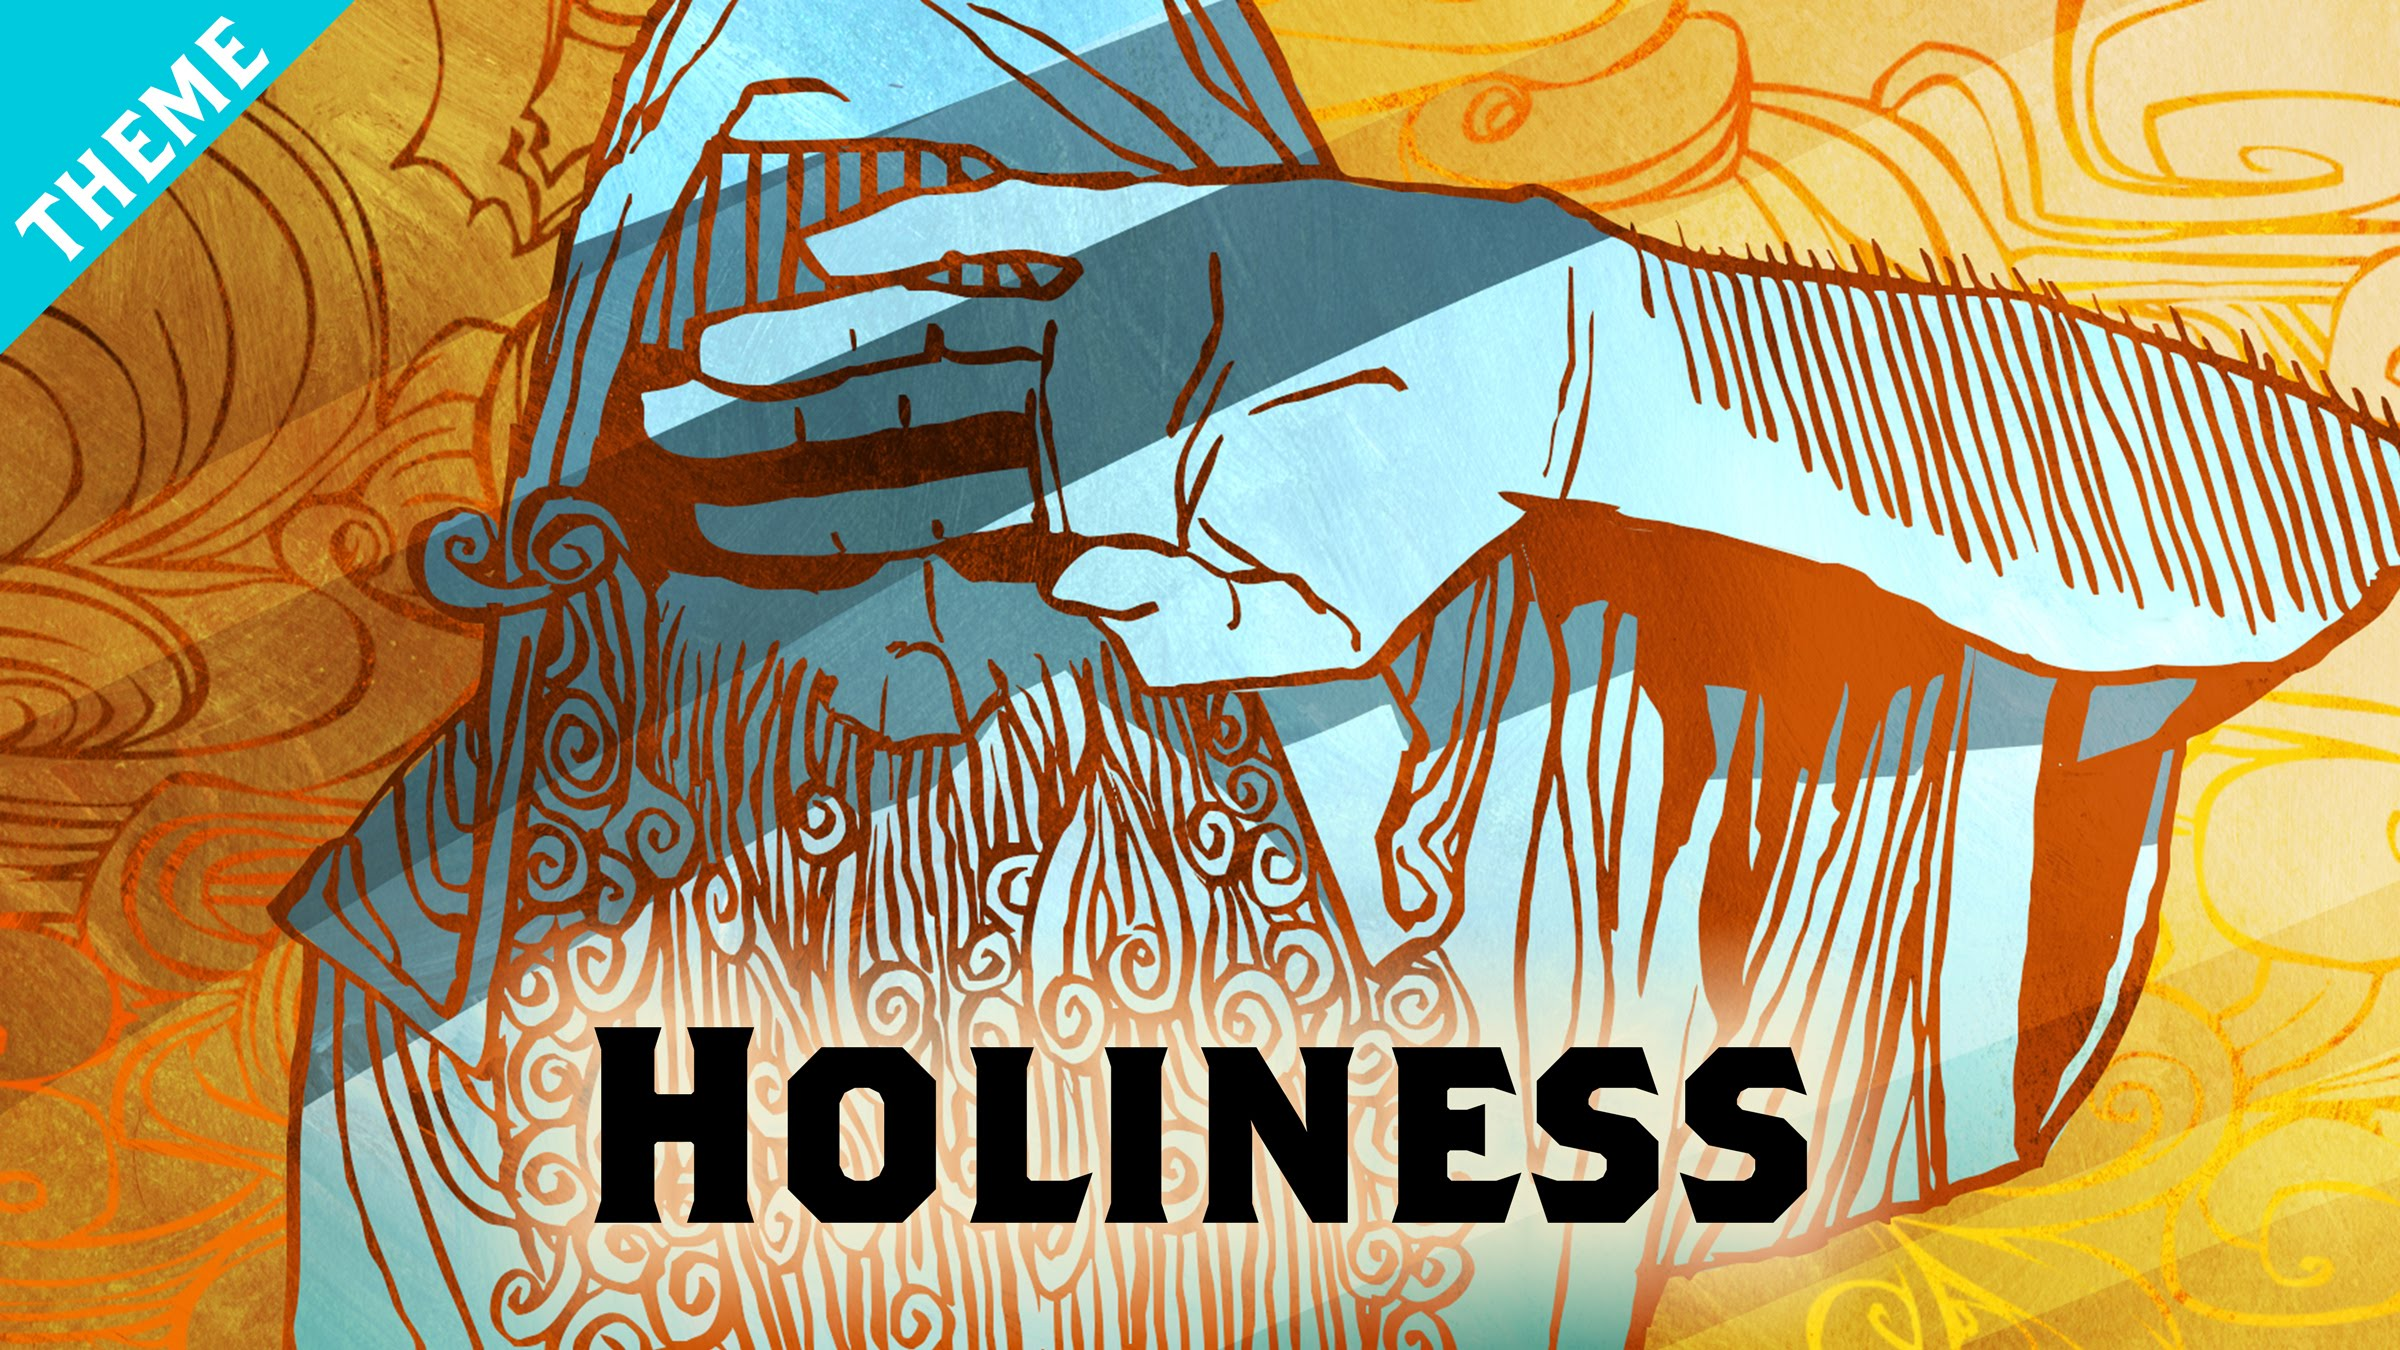 Biblical Themes: An Animated Explanation of God's Holiness